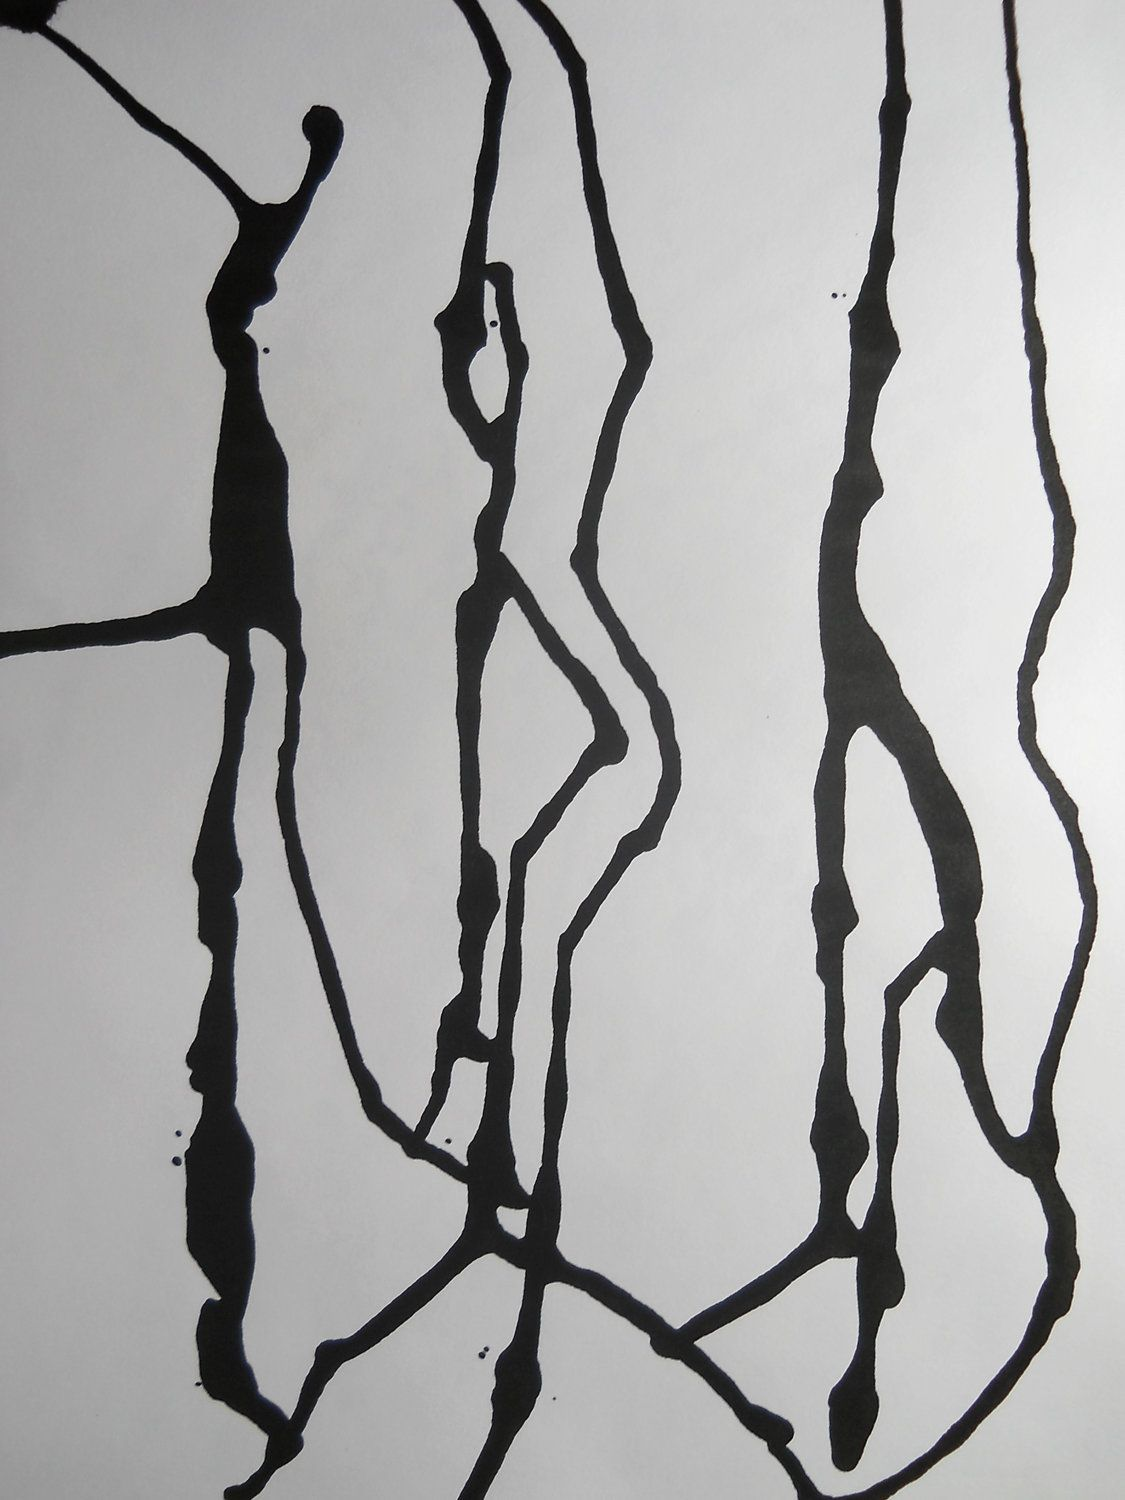 Synchronized Swimming - Original Modern Abstract Black and White Ink Painting (SOLD)